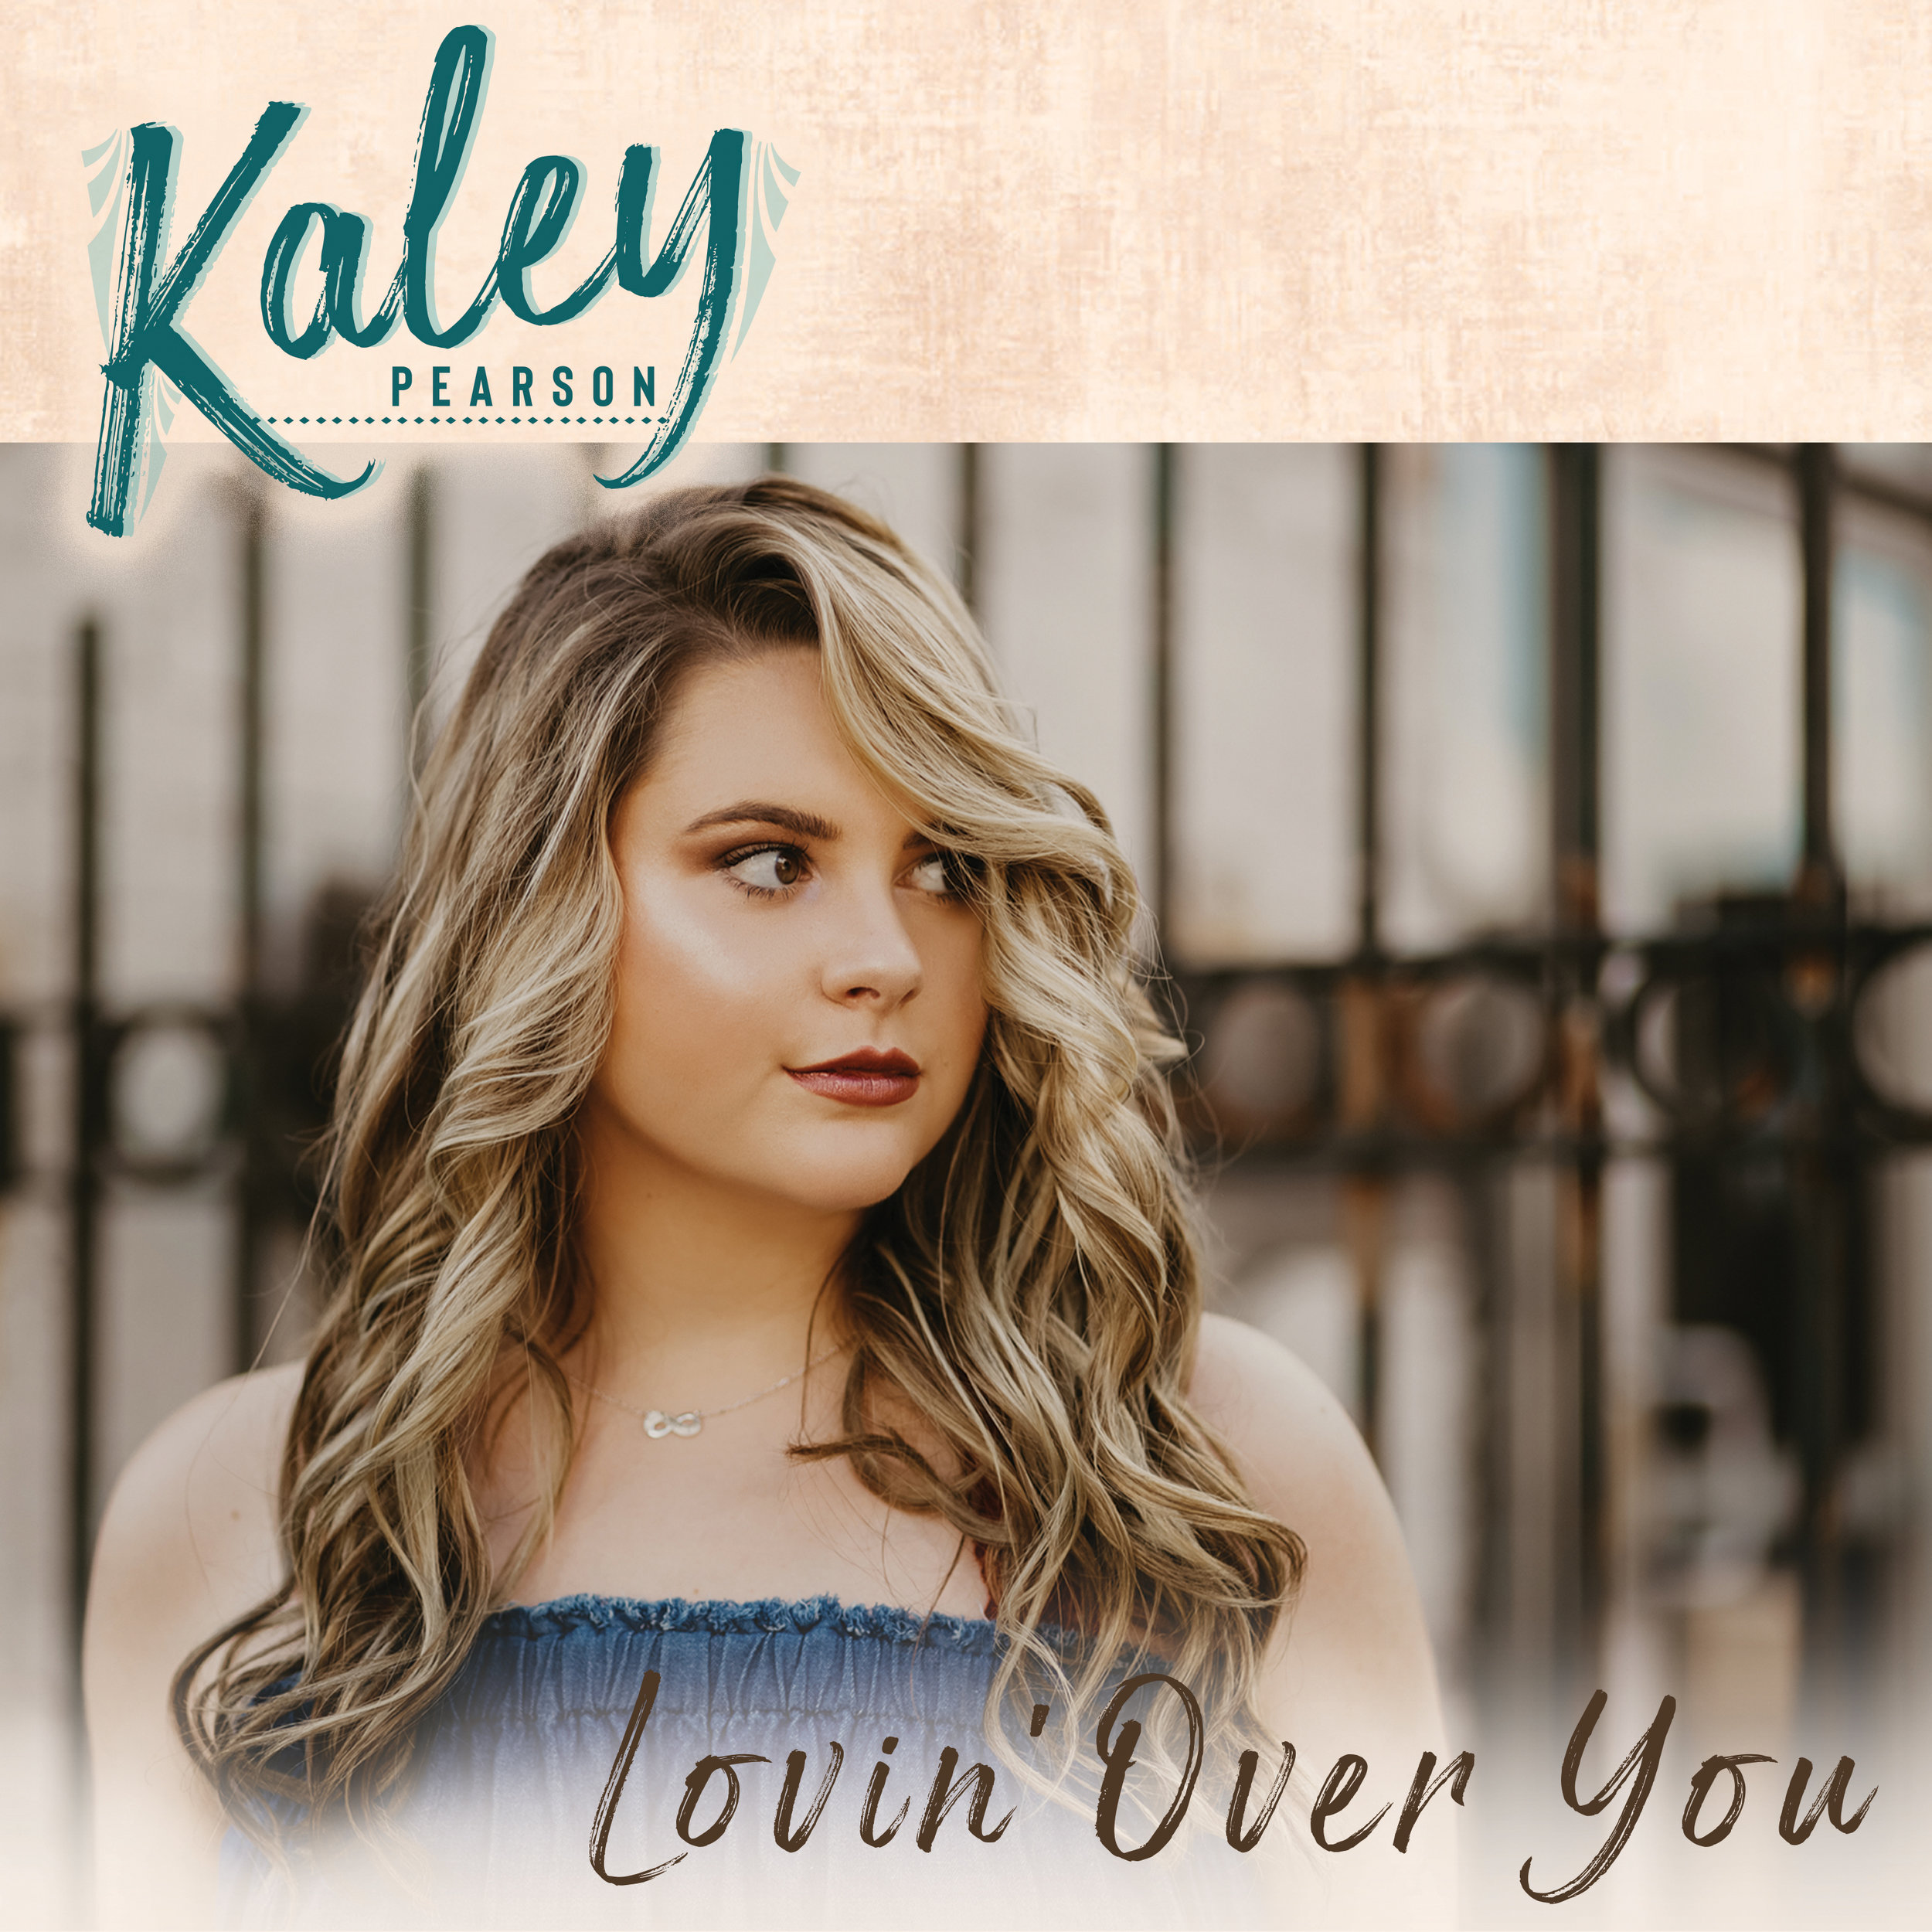 "New single ""Lovin' Over You"" available on September 13. - ""I have just finished vocals [on the EP],"" she affirms, the announcement of the release pending on her website www.kaleypearsonmusic.com. With plans for new music, new songwriting sessions, and touring in her future, Kaley Pearson is carving out her place in the new wave of country music talent knocking on the doors up and down Music Row."